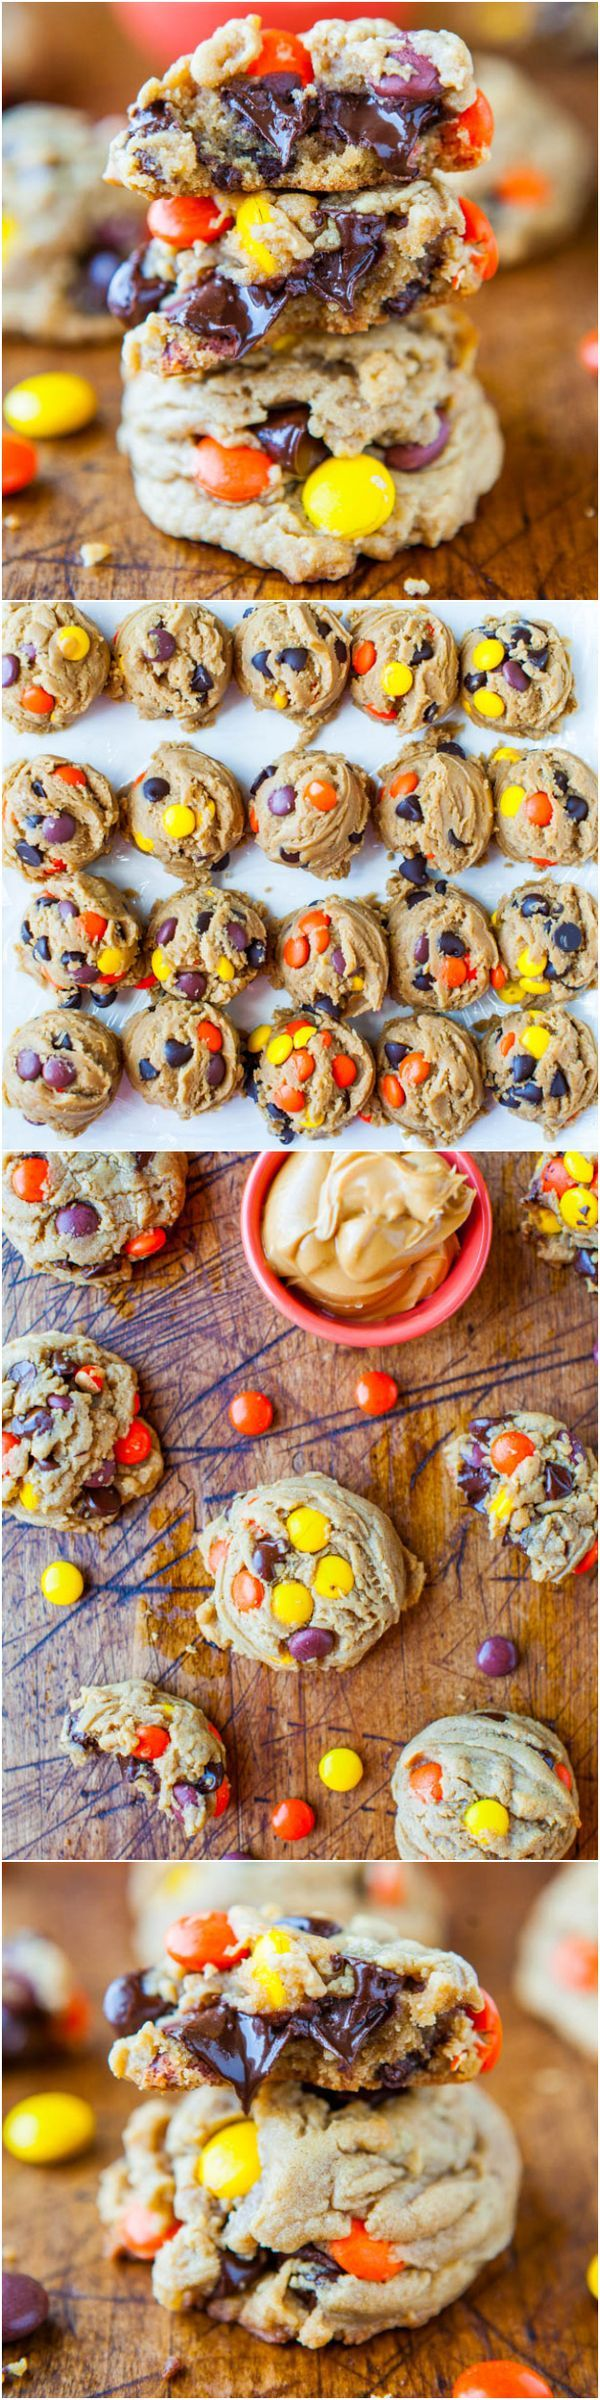 #Recipe: Reese's Pieces Soft Peanut Butter #Cookies